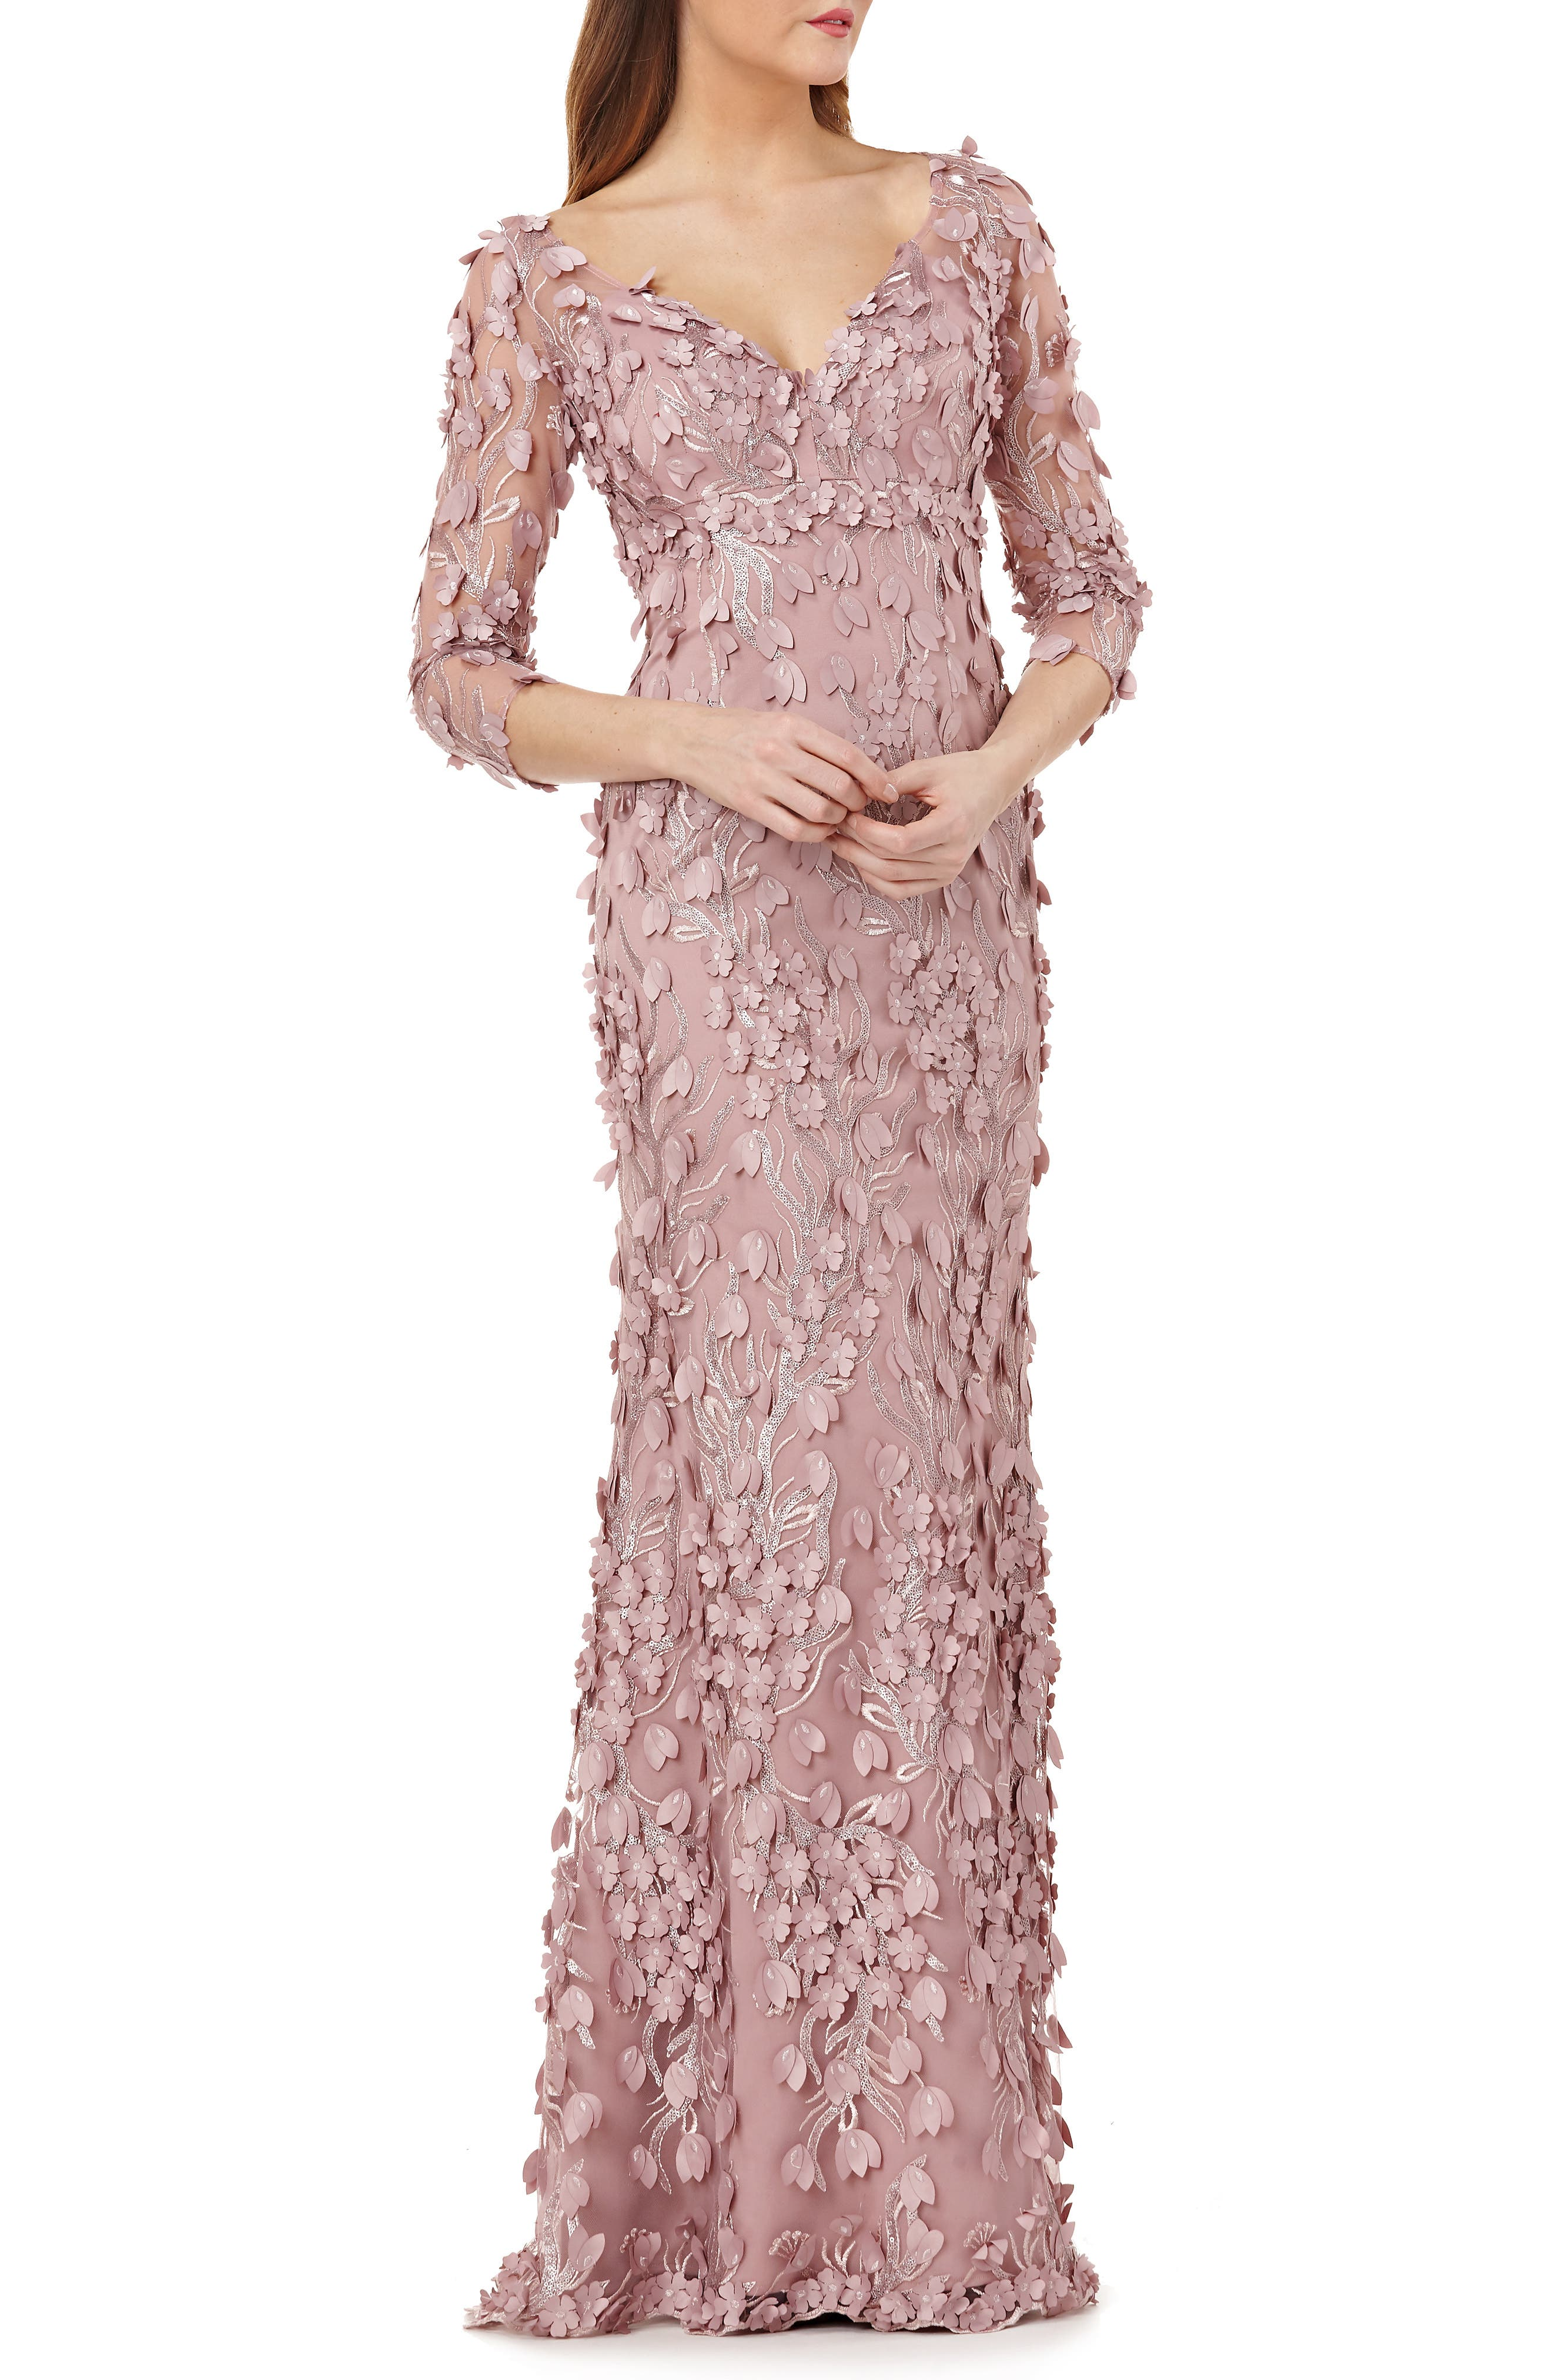 3D Novelty Gown,                         Main,                         color, DUSTY ROSE